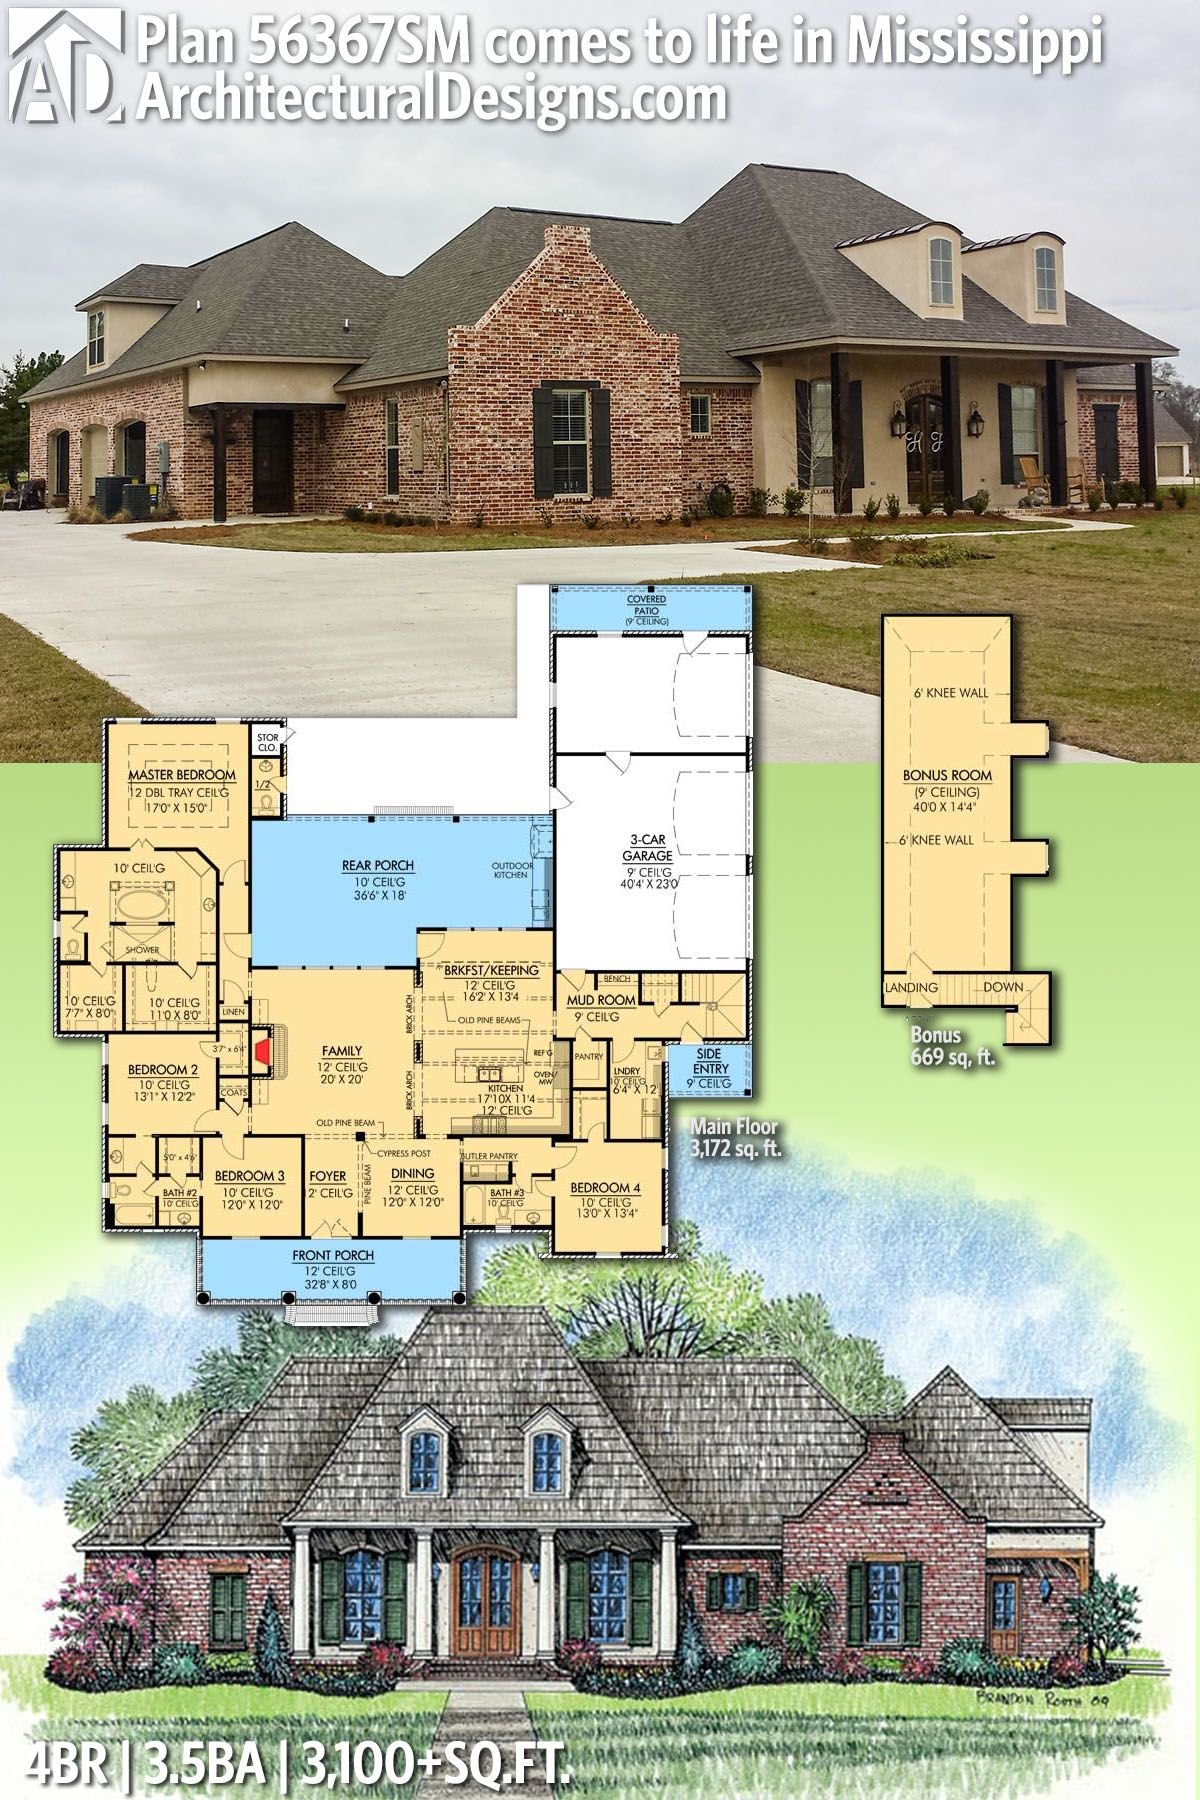 Plan 56367sm Roomy French Country Home Plan In 2020 Country House Plans Southern House Plans French Country House